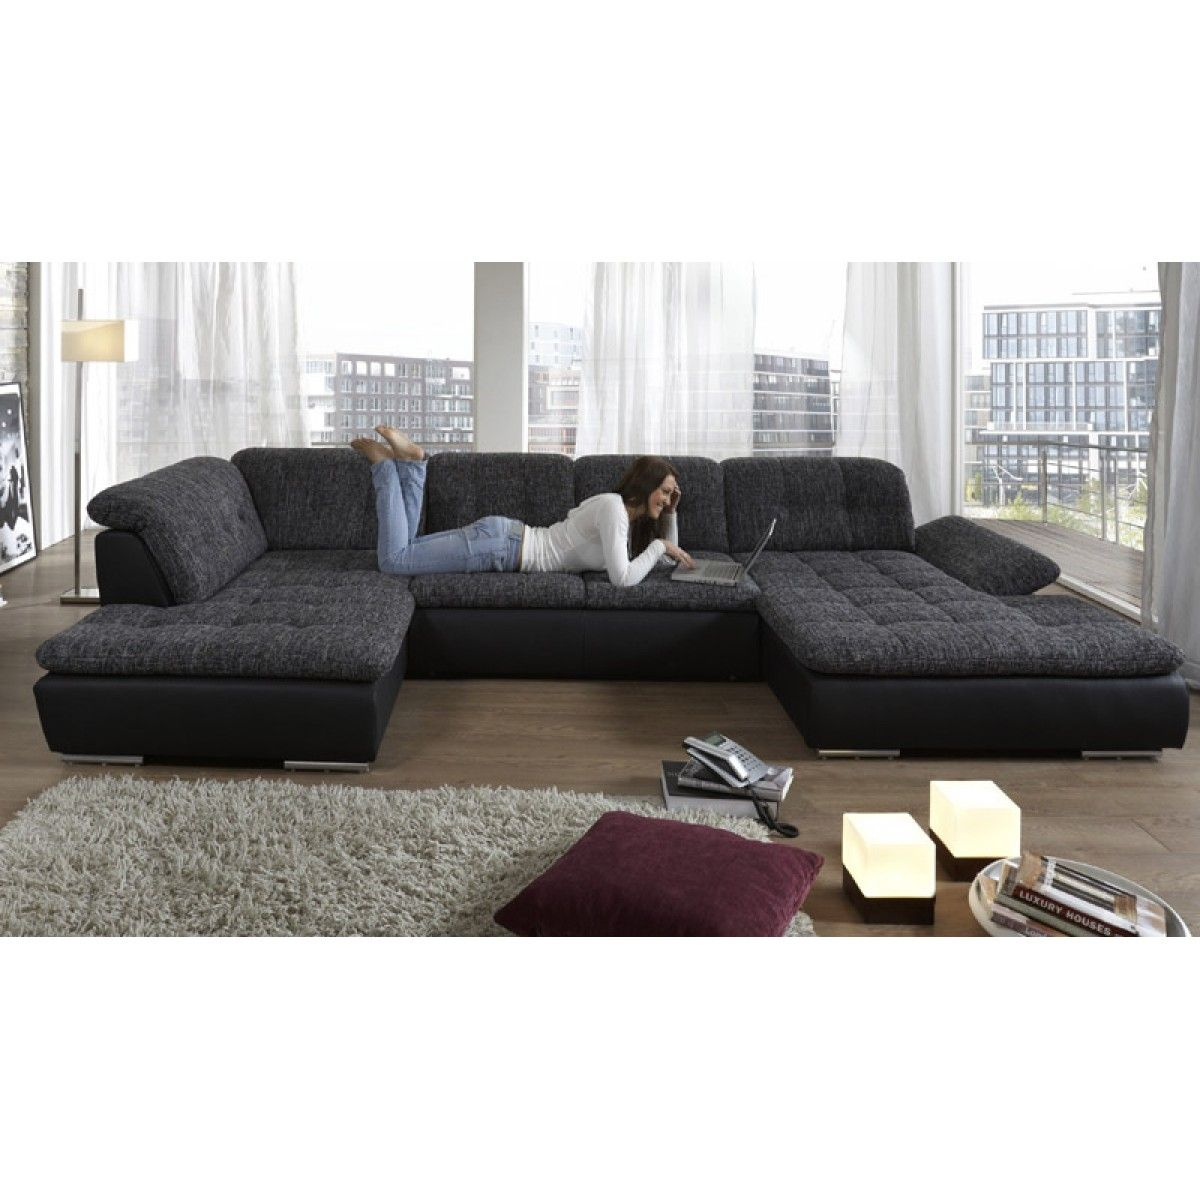 dream couch wohnlandschaft sofa linos i matratzen lattenroste xxl lattenroste xxl matrat. Black Bedroom Furniture Sets. Home Design Ideas